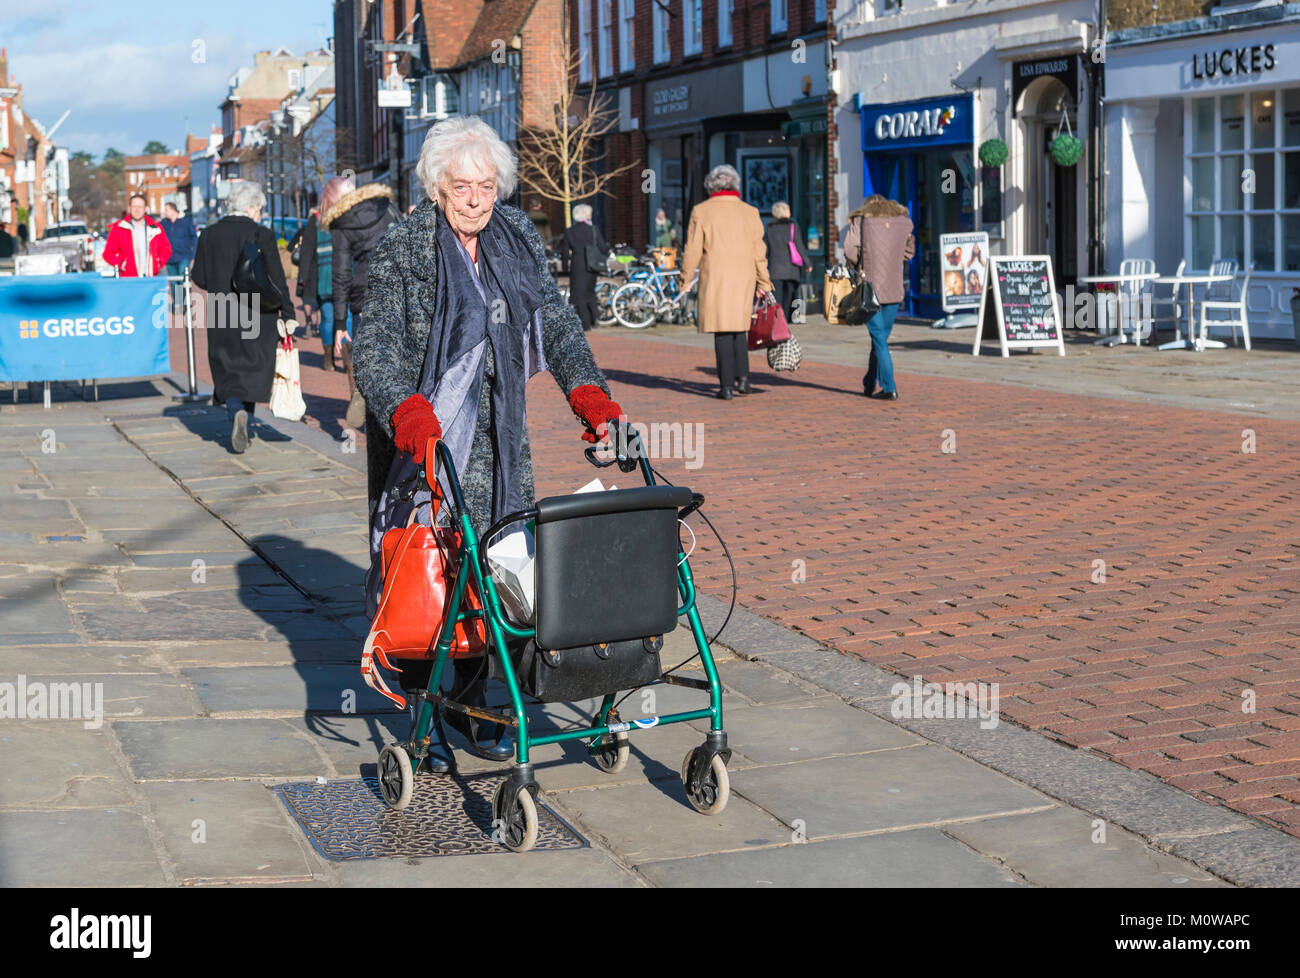 Elderly woman with wheeled rollator (wheeled zimmer frame walking aid) in a pedestrianise shopping area in Chichester, - Stock Image